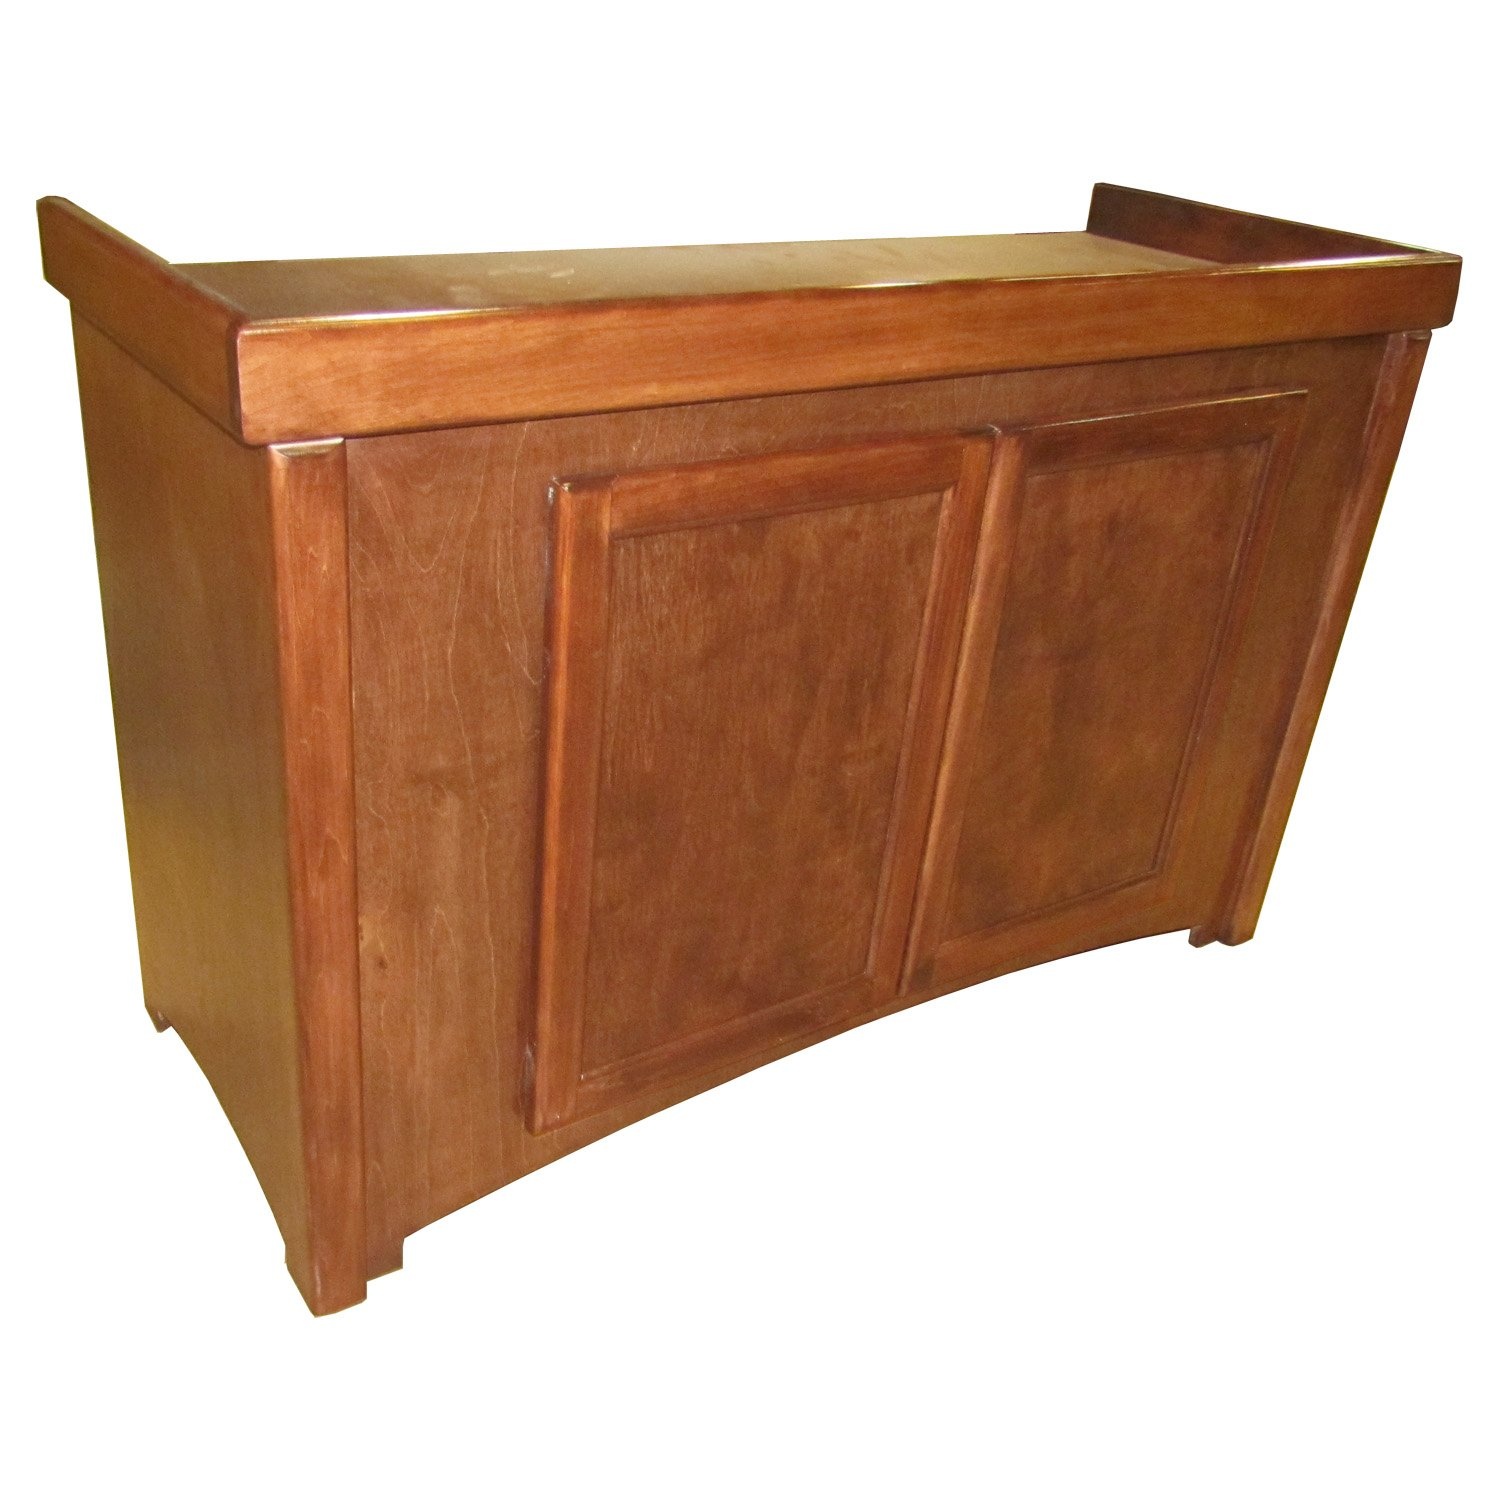 RJ Enterprises 48x18 Cherry Birch Calypso Cabinet  for 75 90 and 110 Gallon Glass Aquariums 48.75 IN Brown